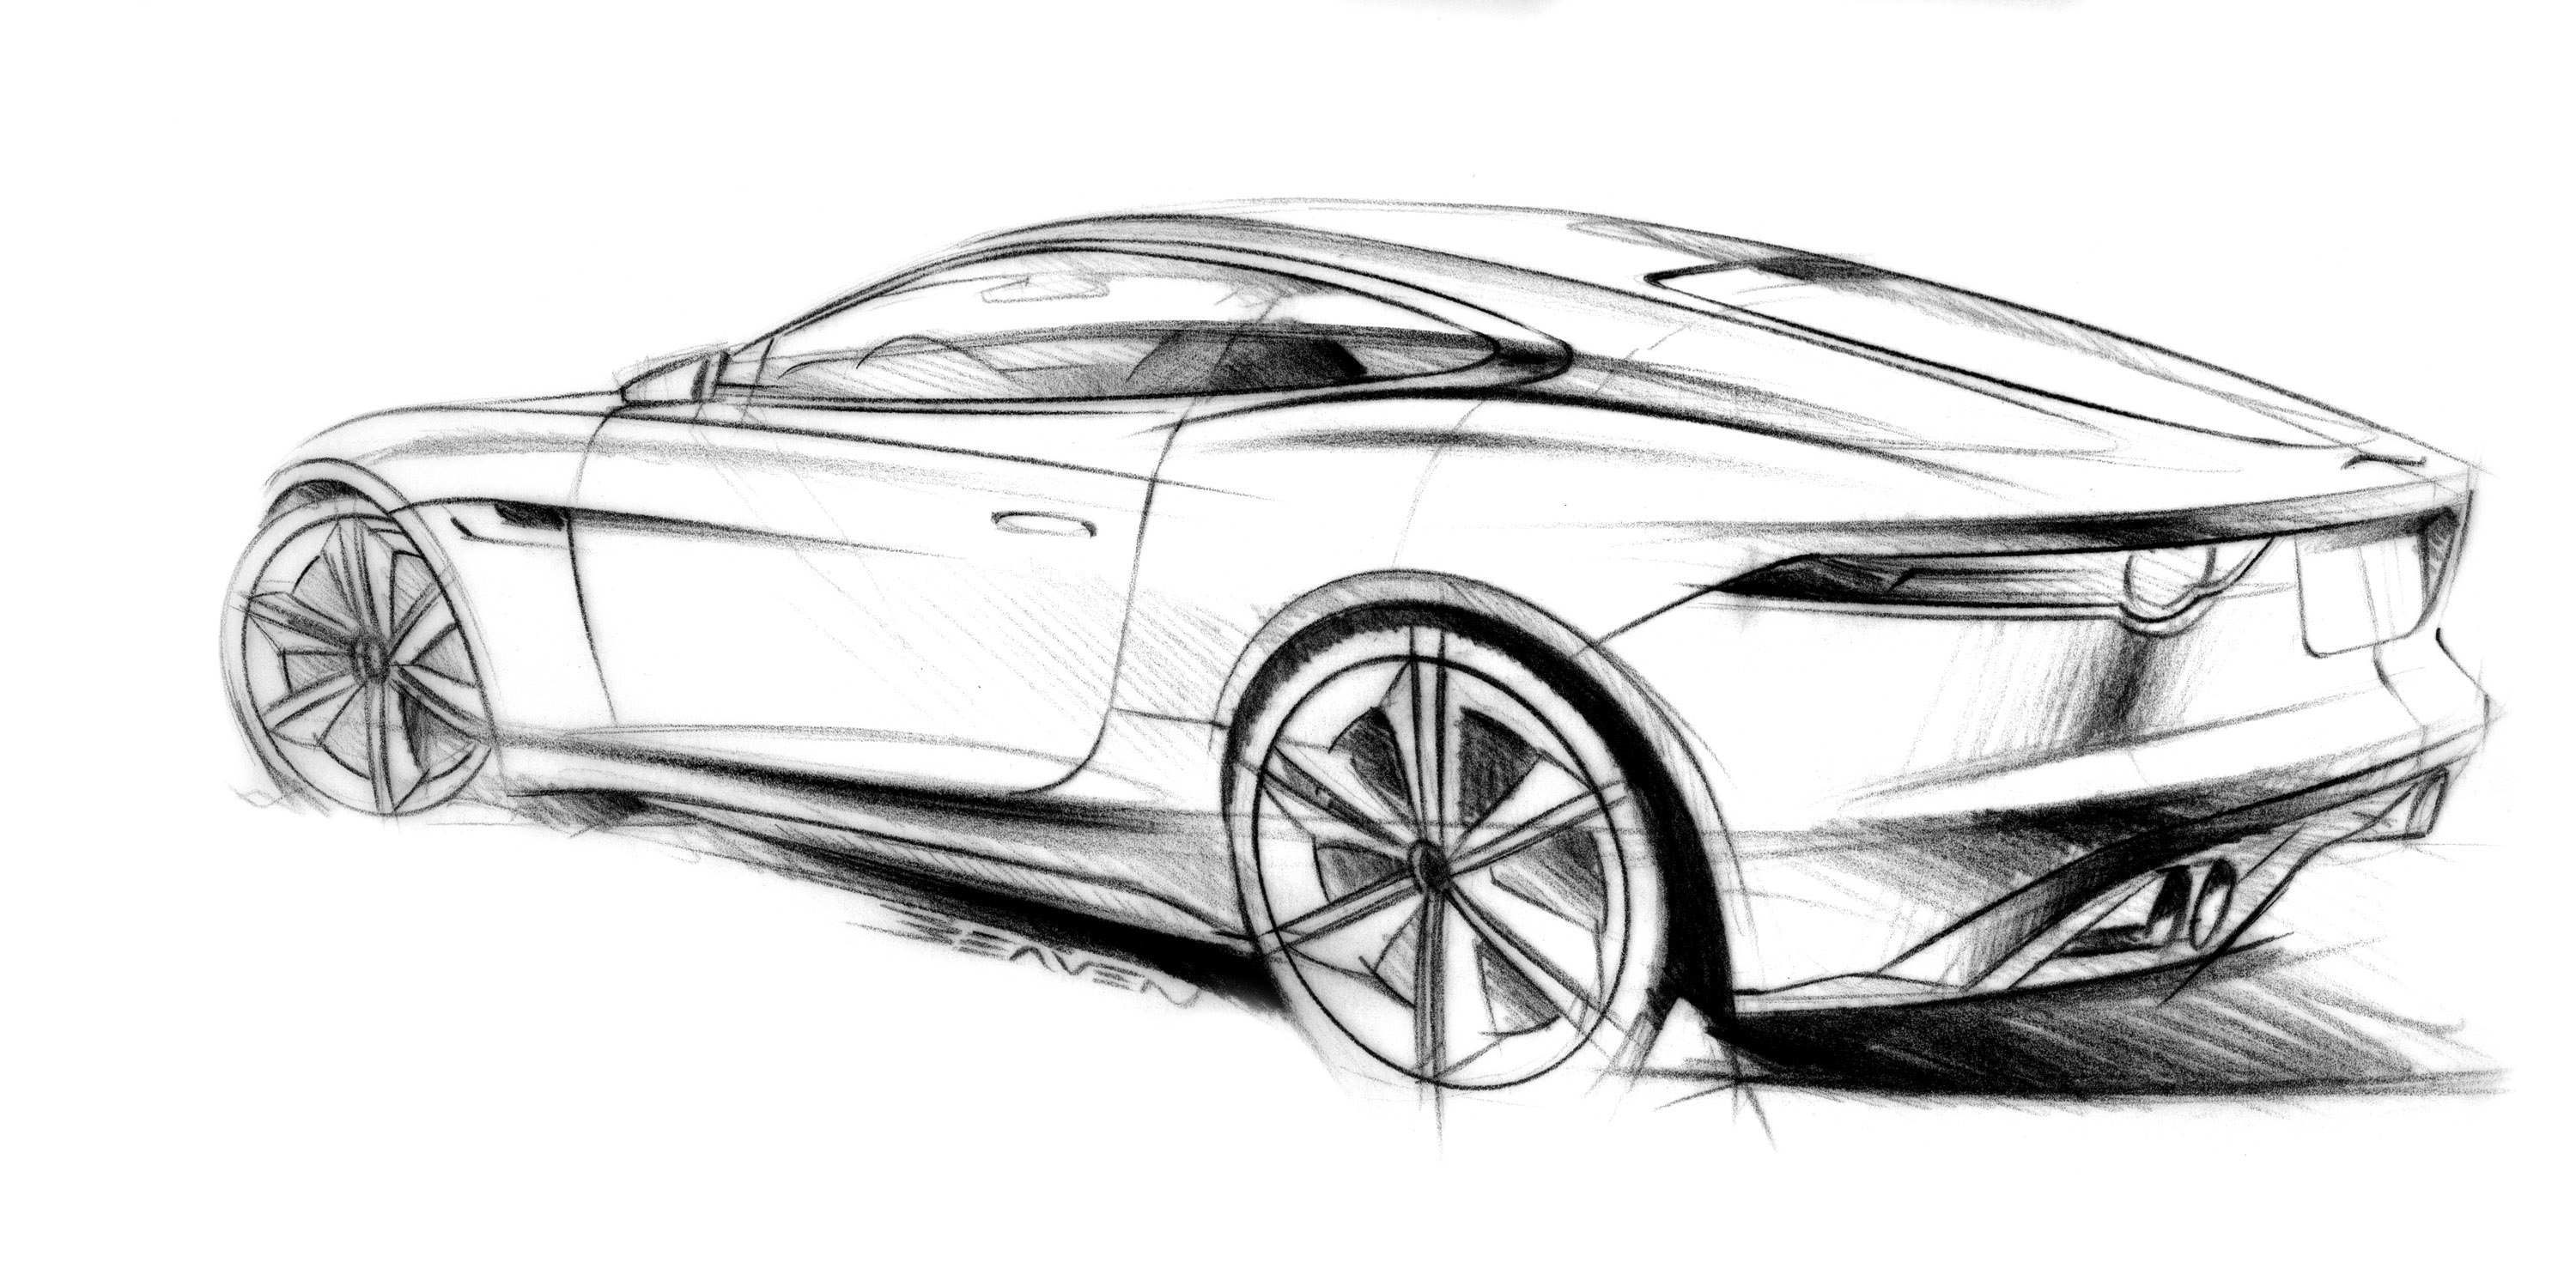 Jaguar C X16 Concept Supercar Supercars Drawing Sketch Pencil Art W Wallpaper